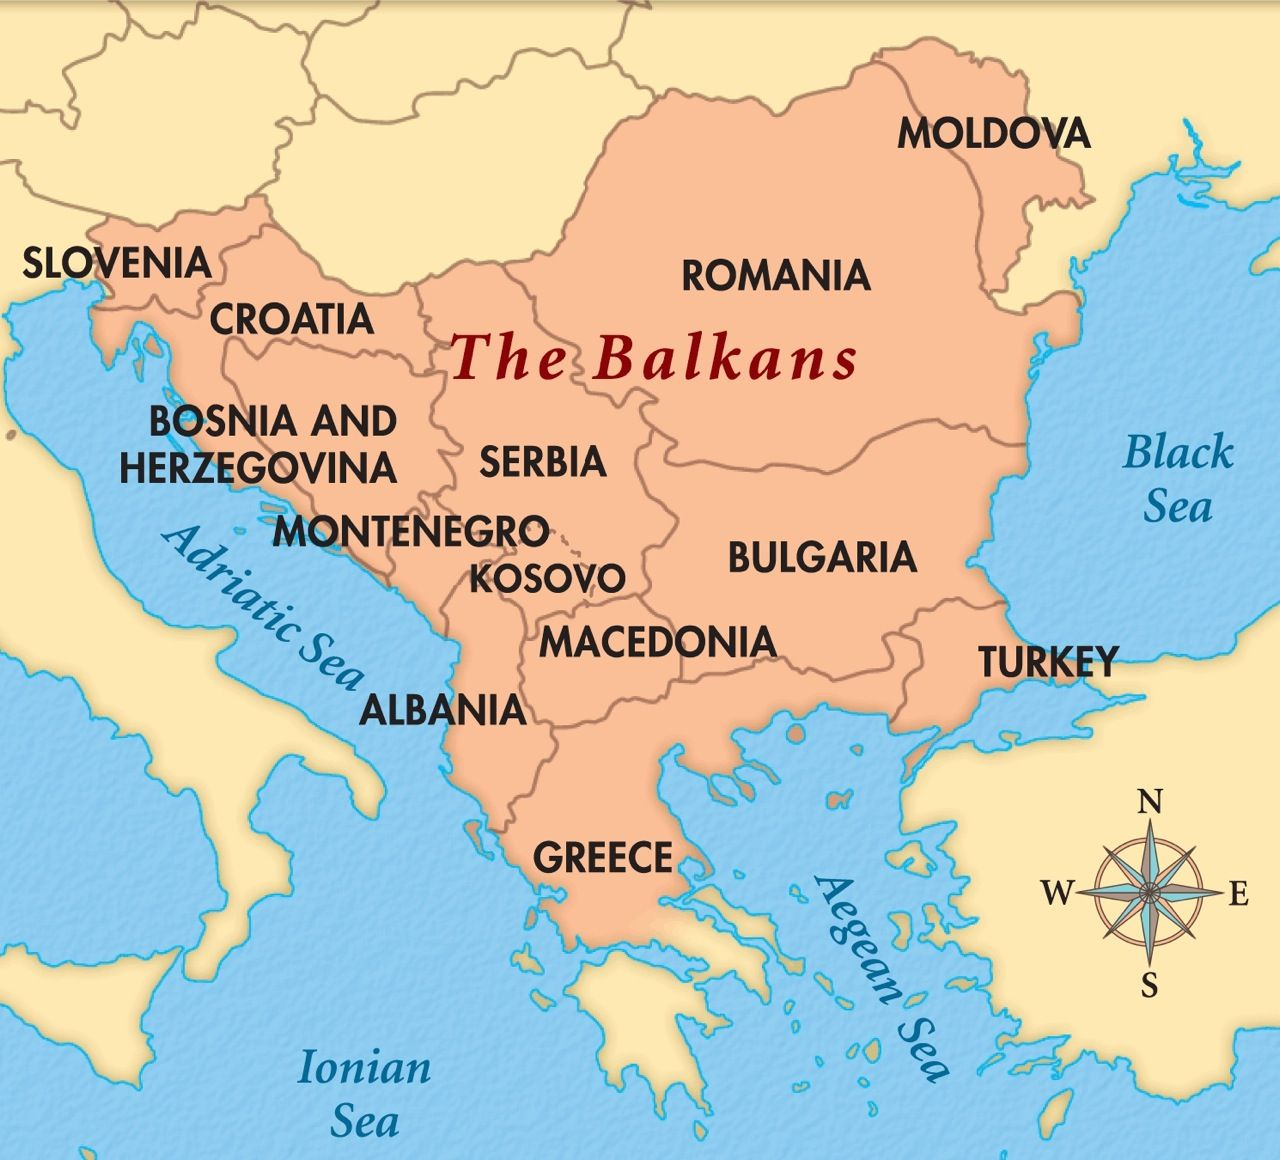 The Balkans Map Balkans map. Territories whose borders lie entirely within the